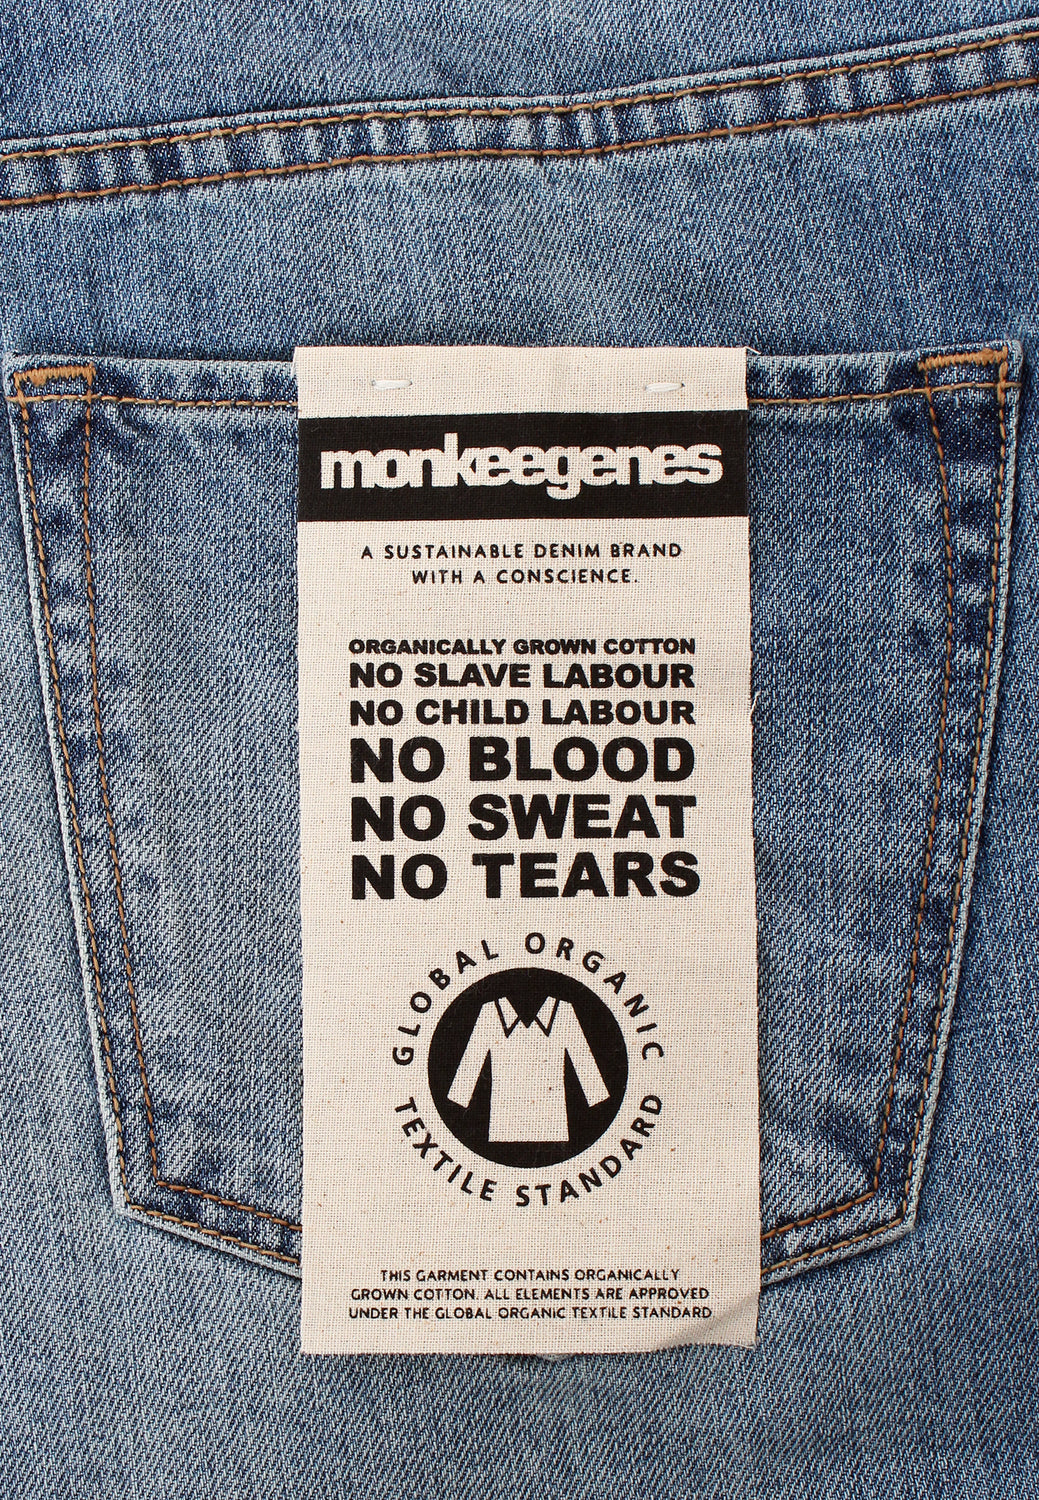 Jack Tapered Fit Organic Jeans in Light Wash - Monkee Genes Organic Jeans Denim - Men's Tapered Monkee Genes Official  Monkee Genes Official